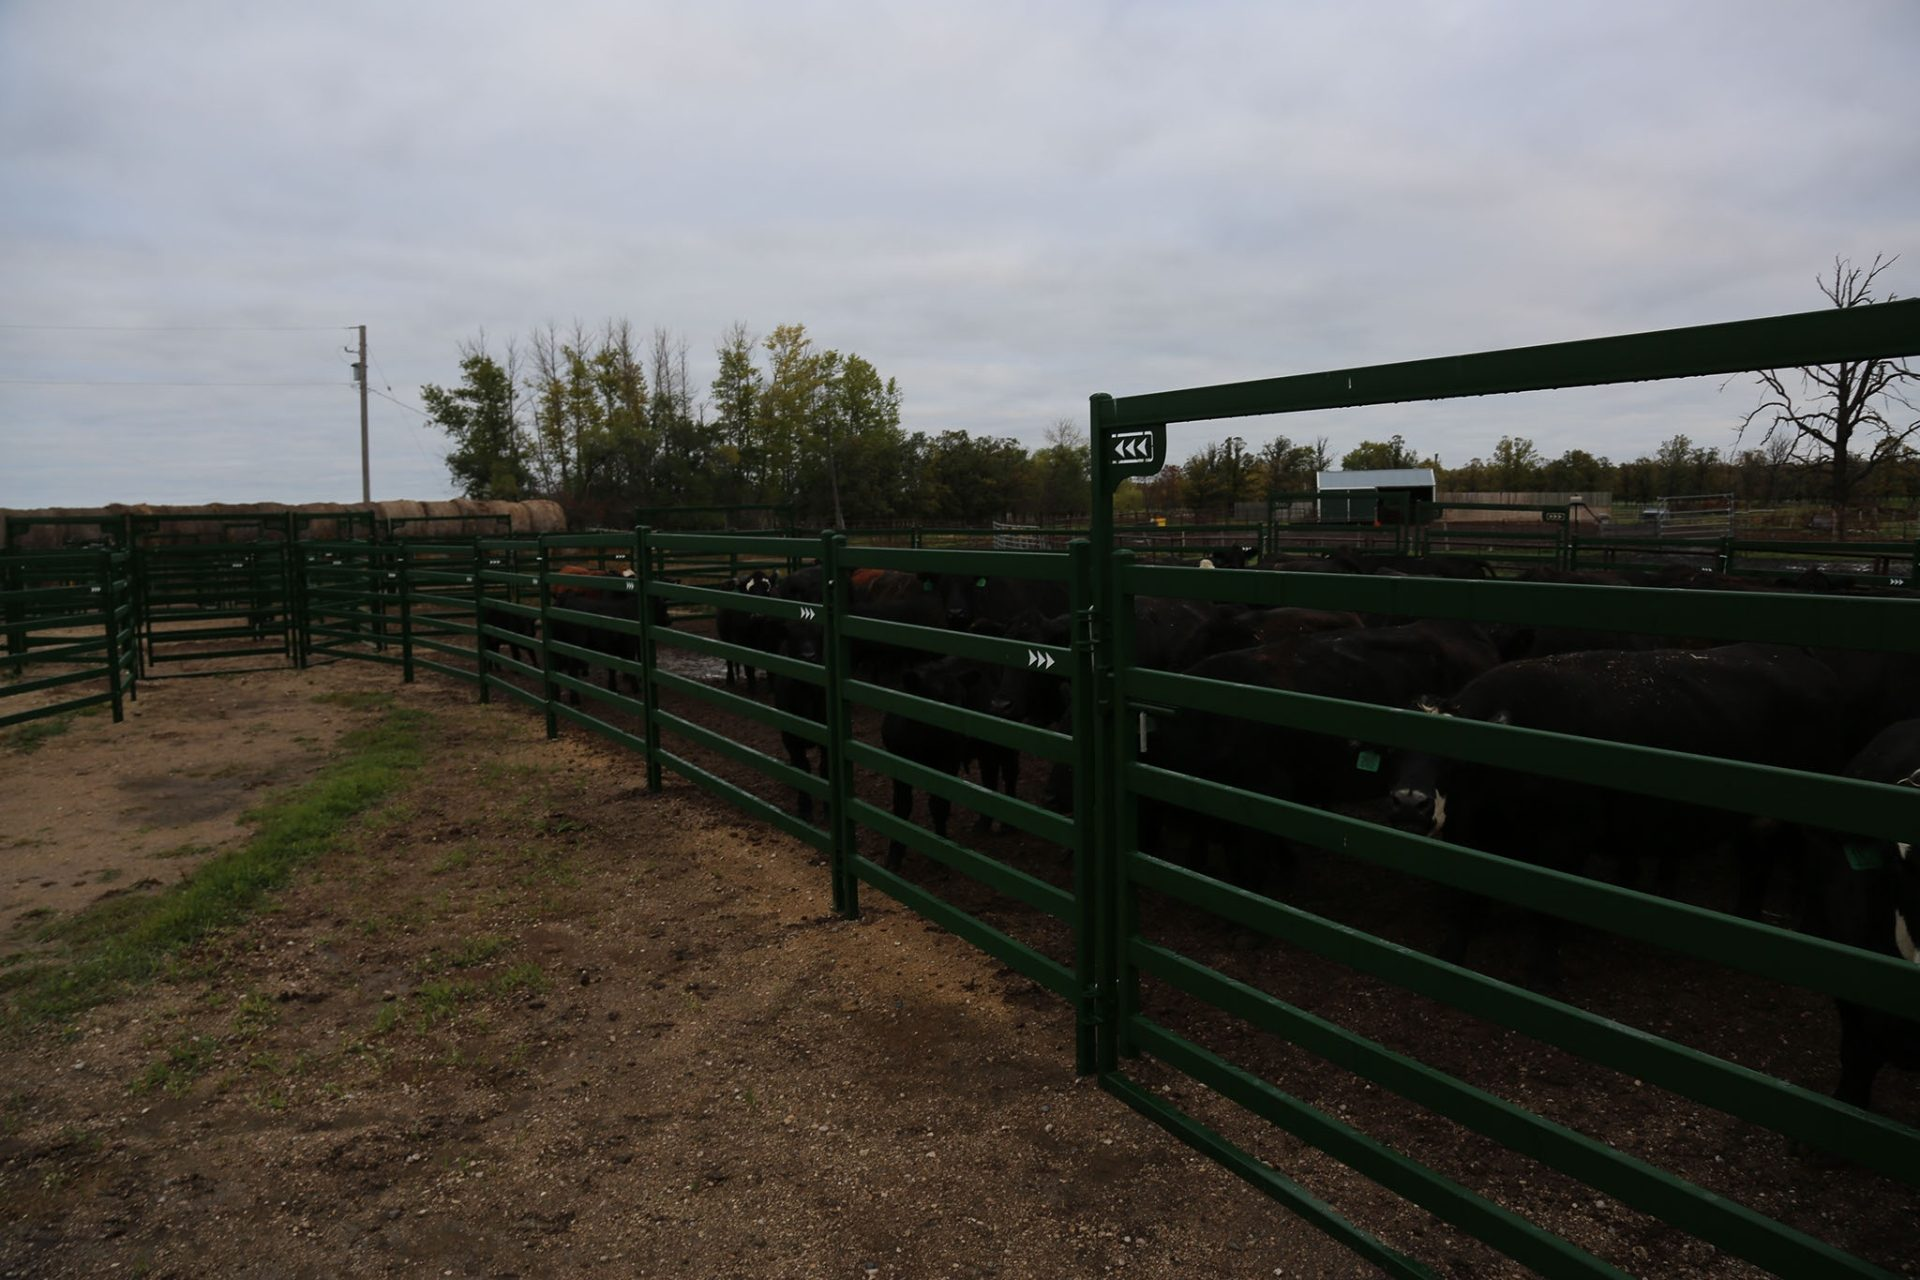 Heavy-duty Arrow Cattle Panels and Gates with cattle in a pen